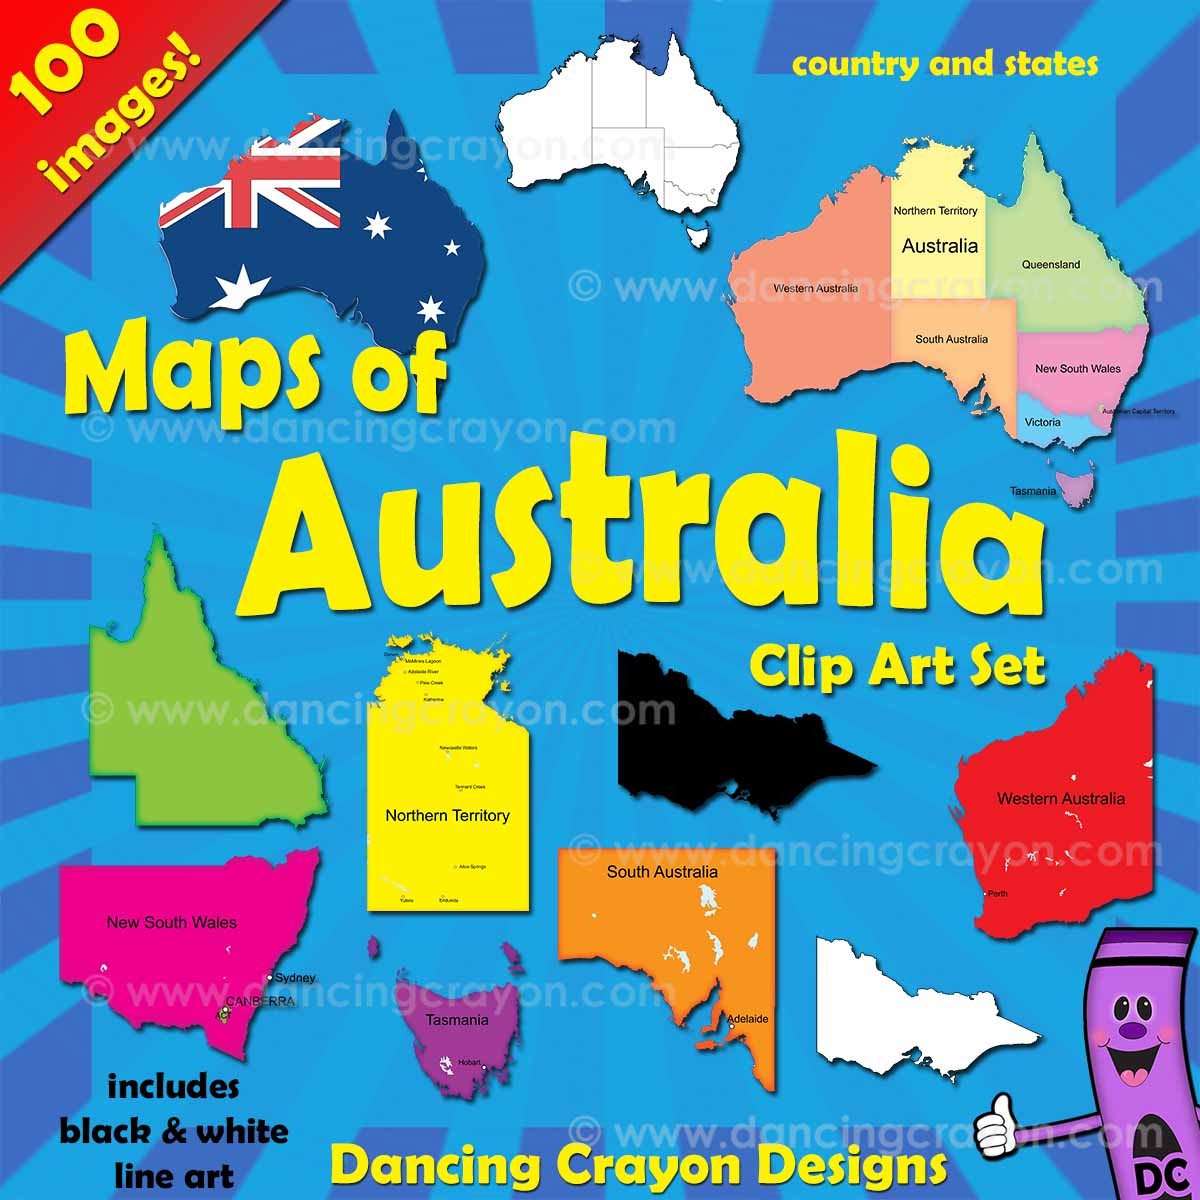 Free Clipart Map Of Australia | You can see a map of many places ...